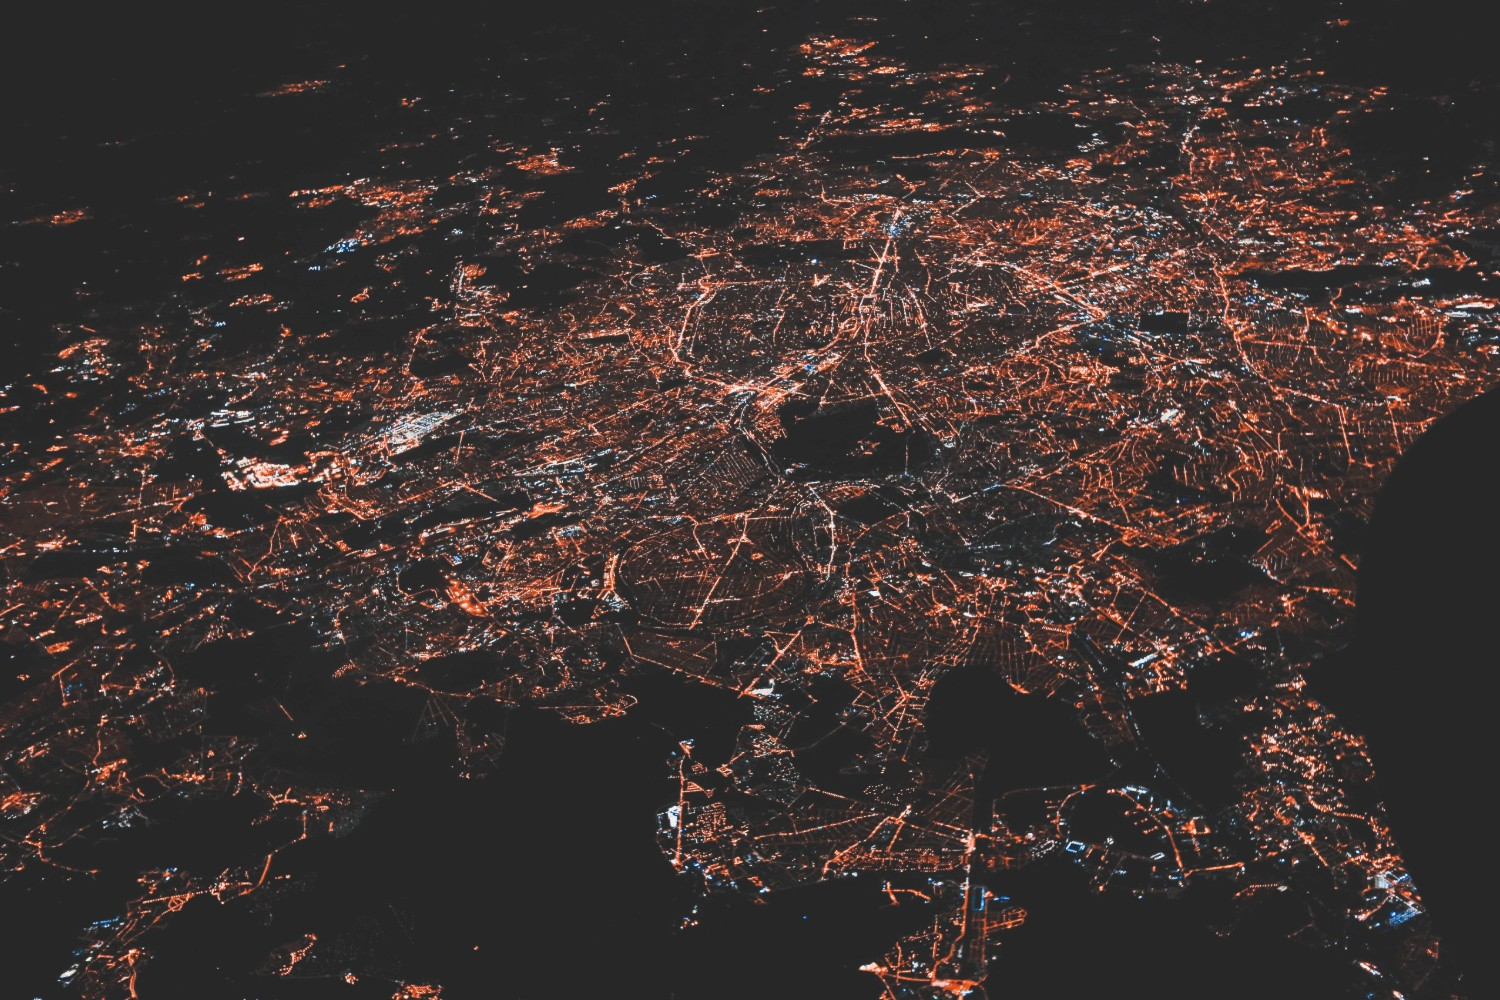 City aerial view at night